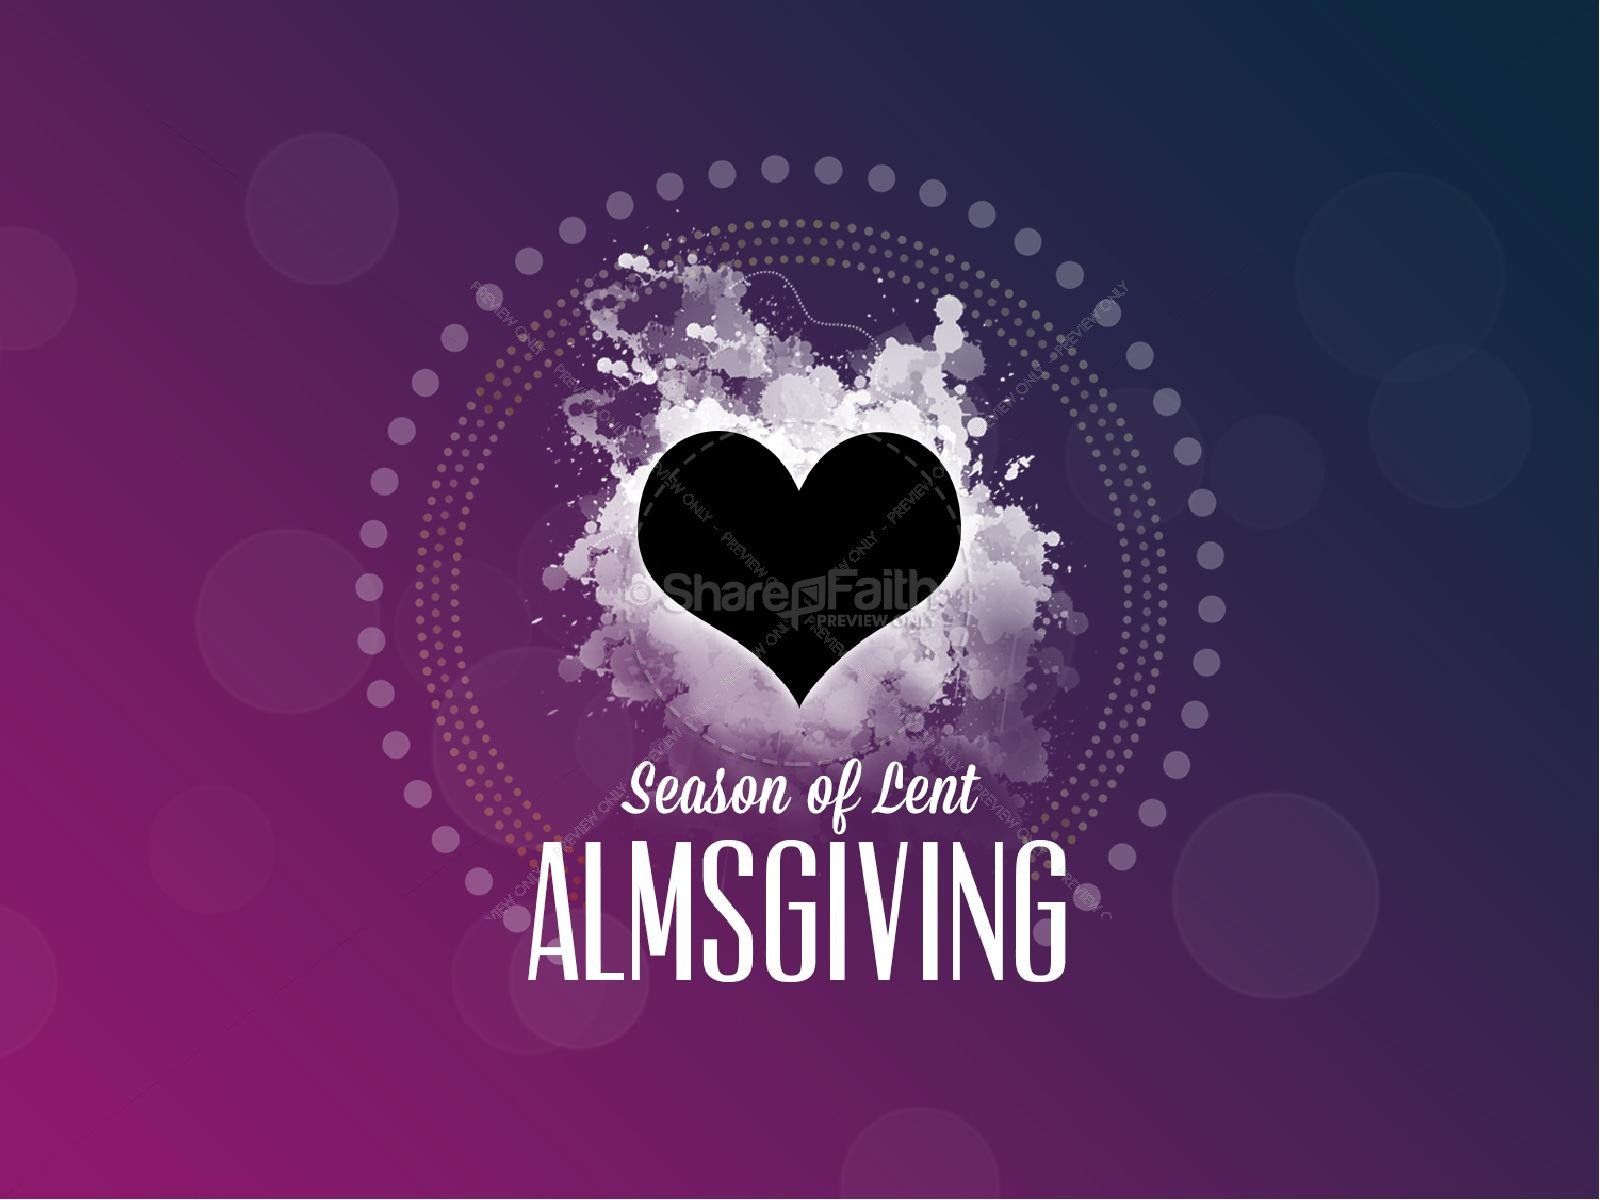 Season of lent almsgiving - Wallpaper for lent season ...